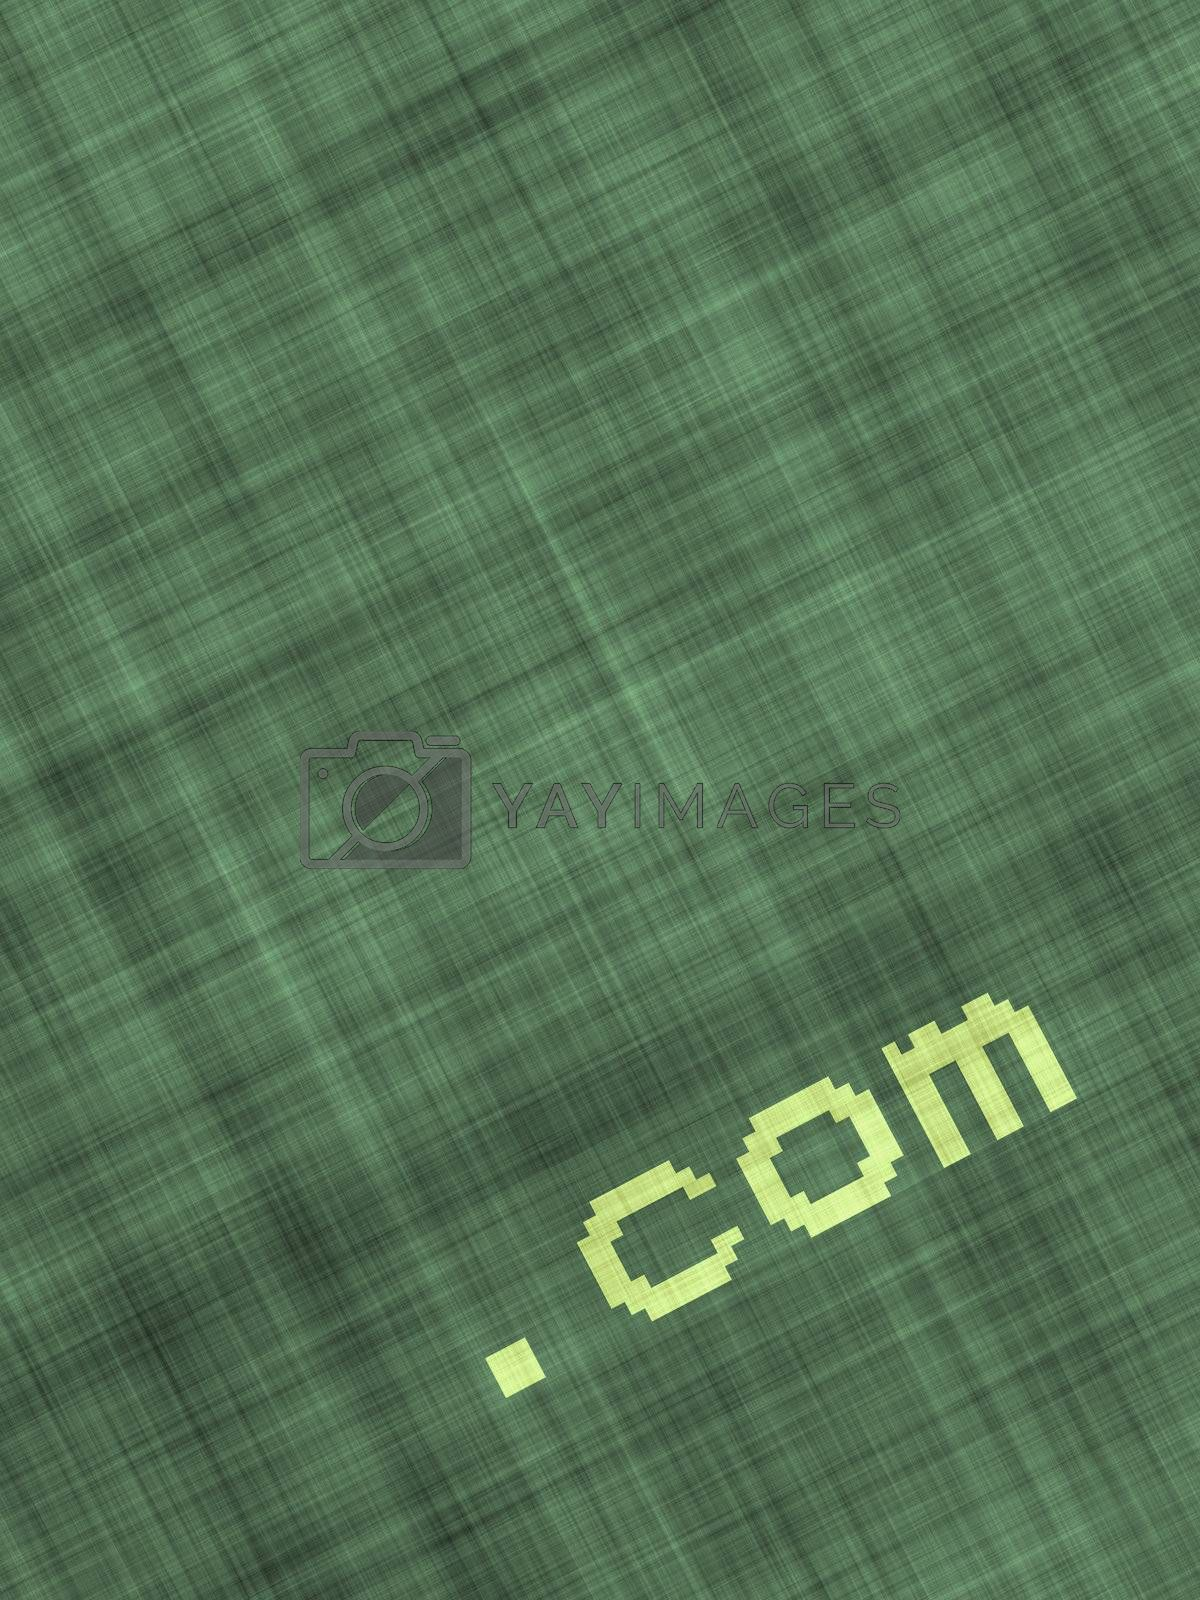 internet icon .com on textile background